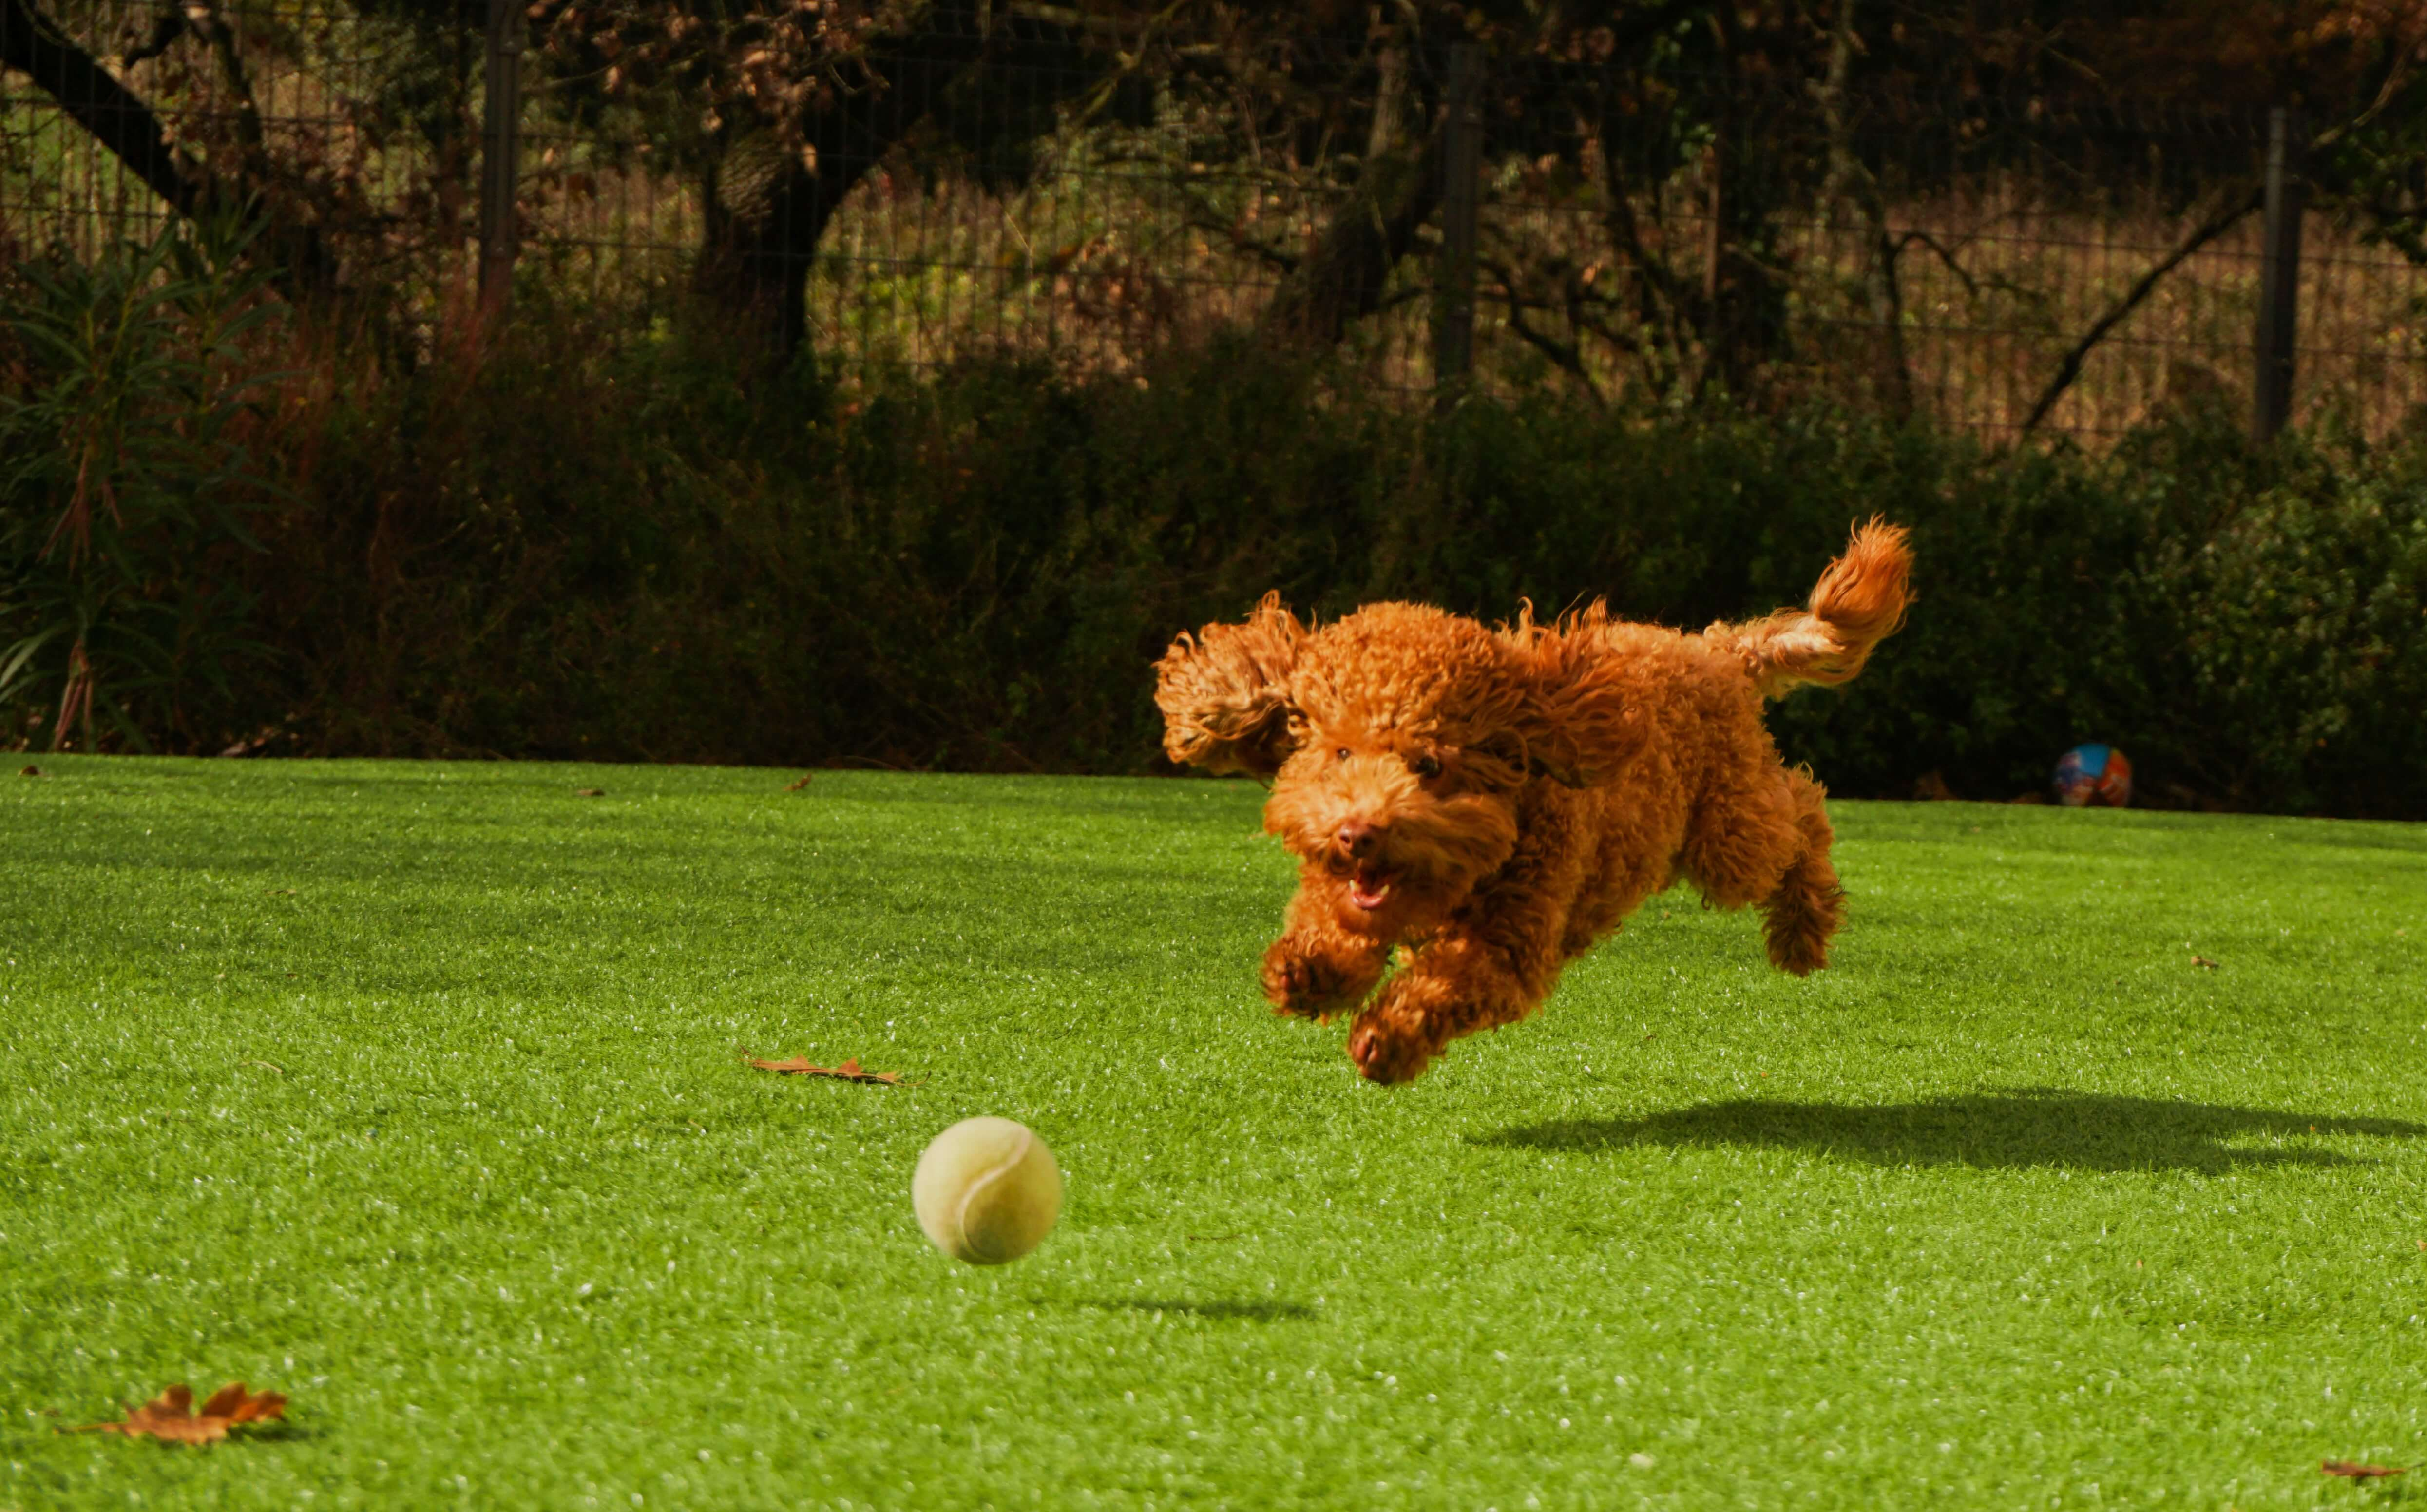 dog playing with the ball